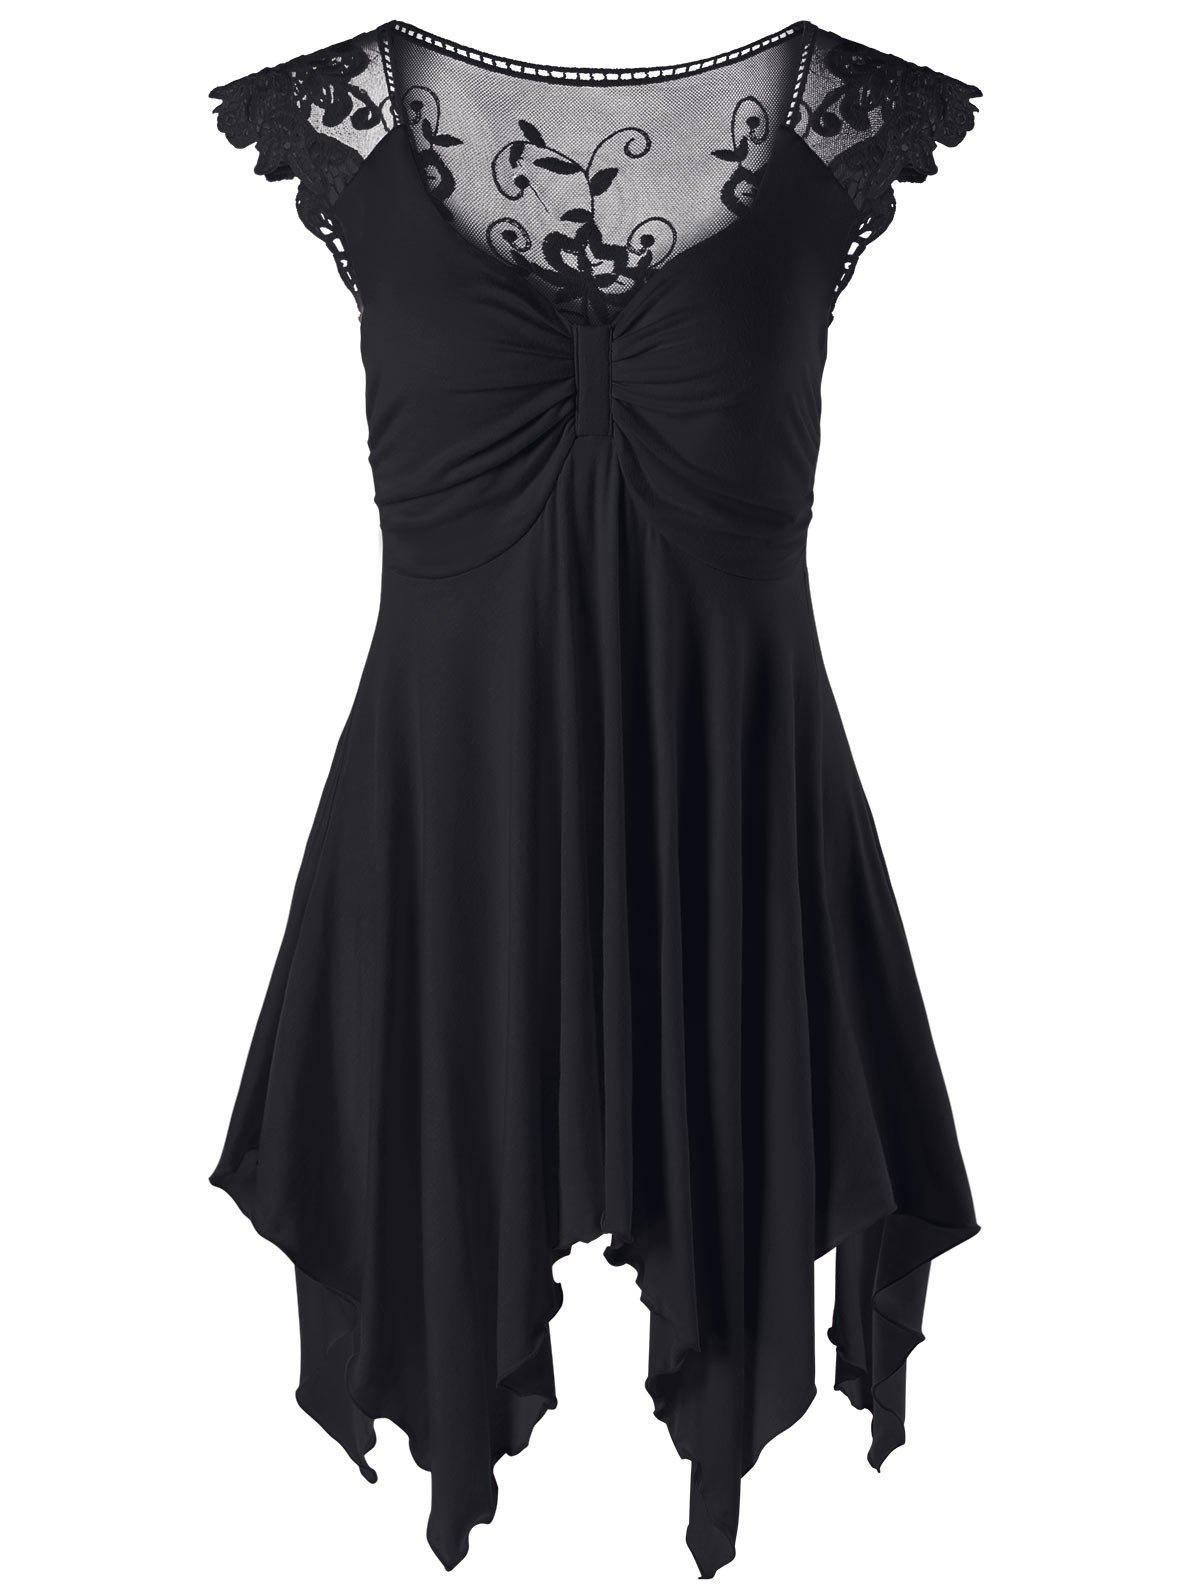 Lace Panel Cap Sleeve Asymmetric Top - BLACK L